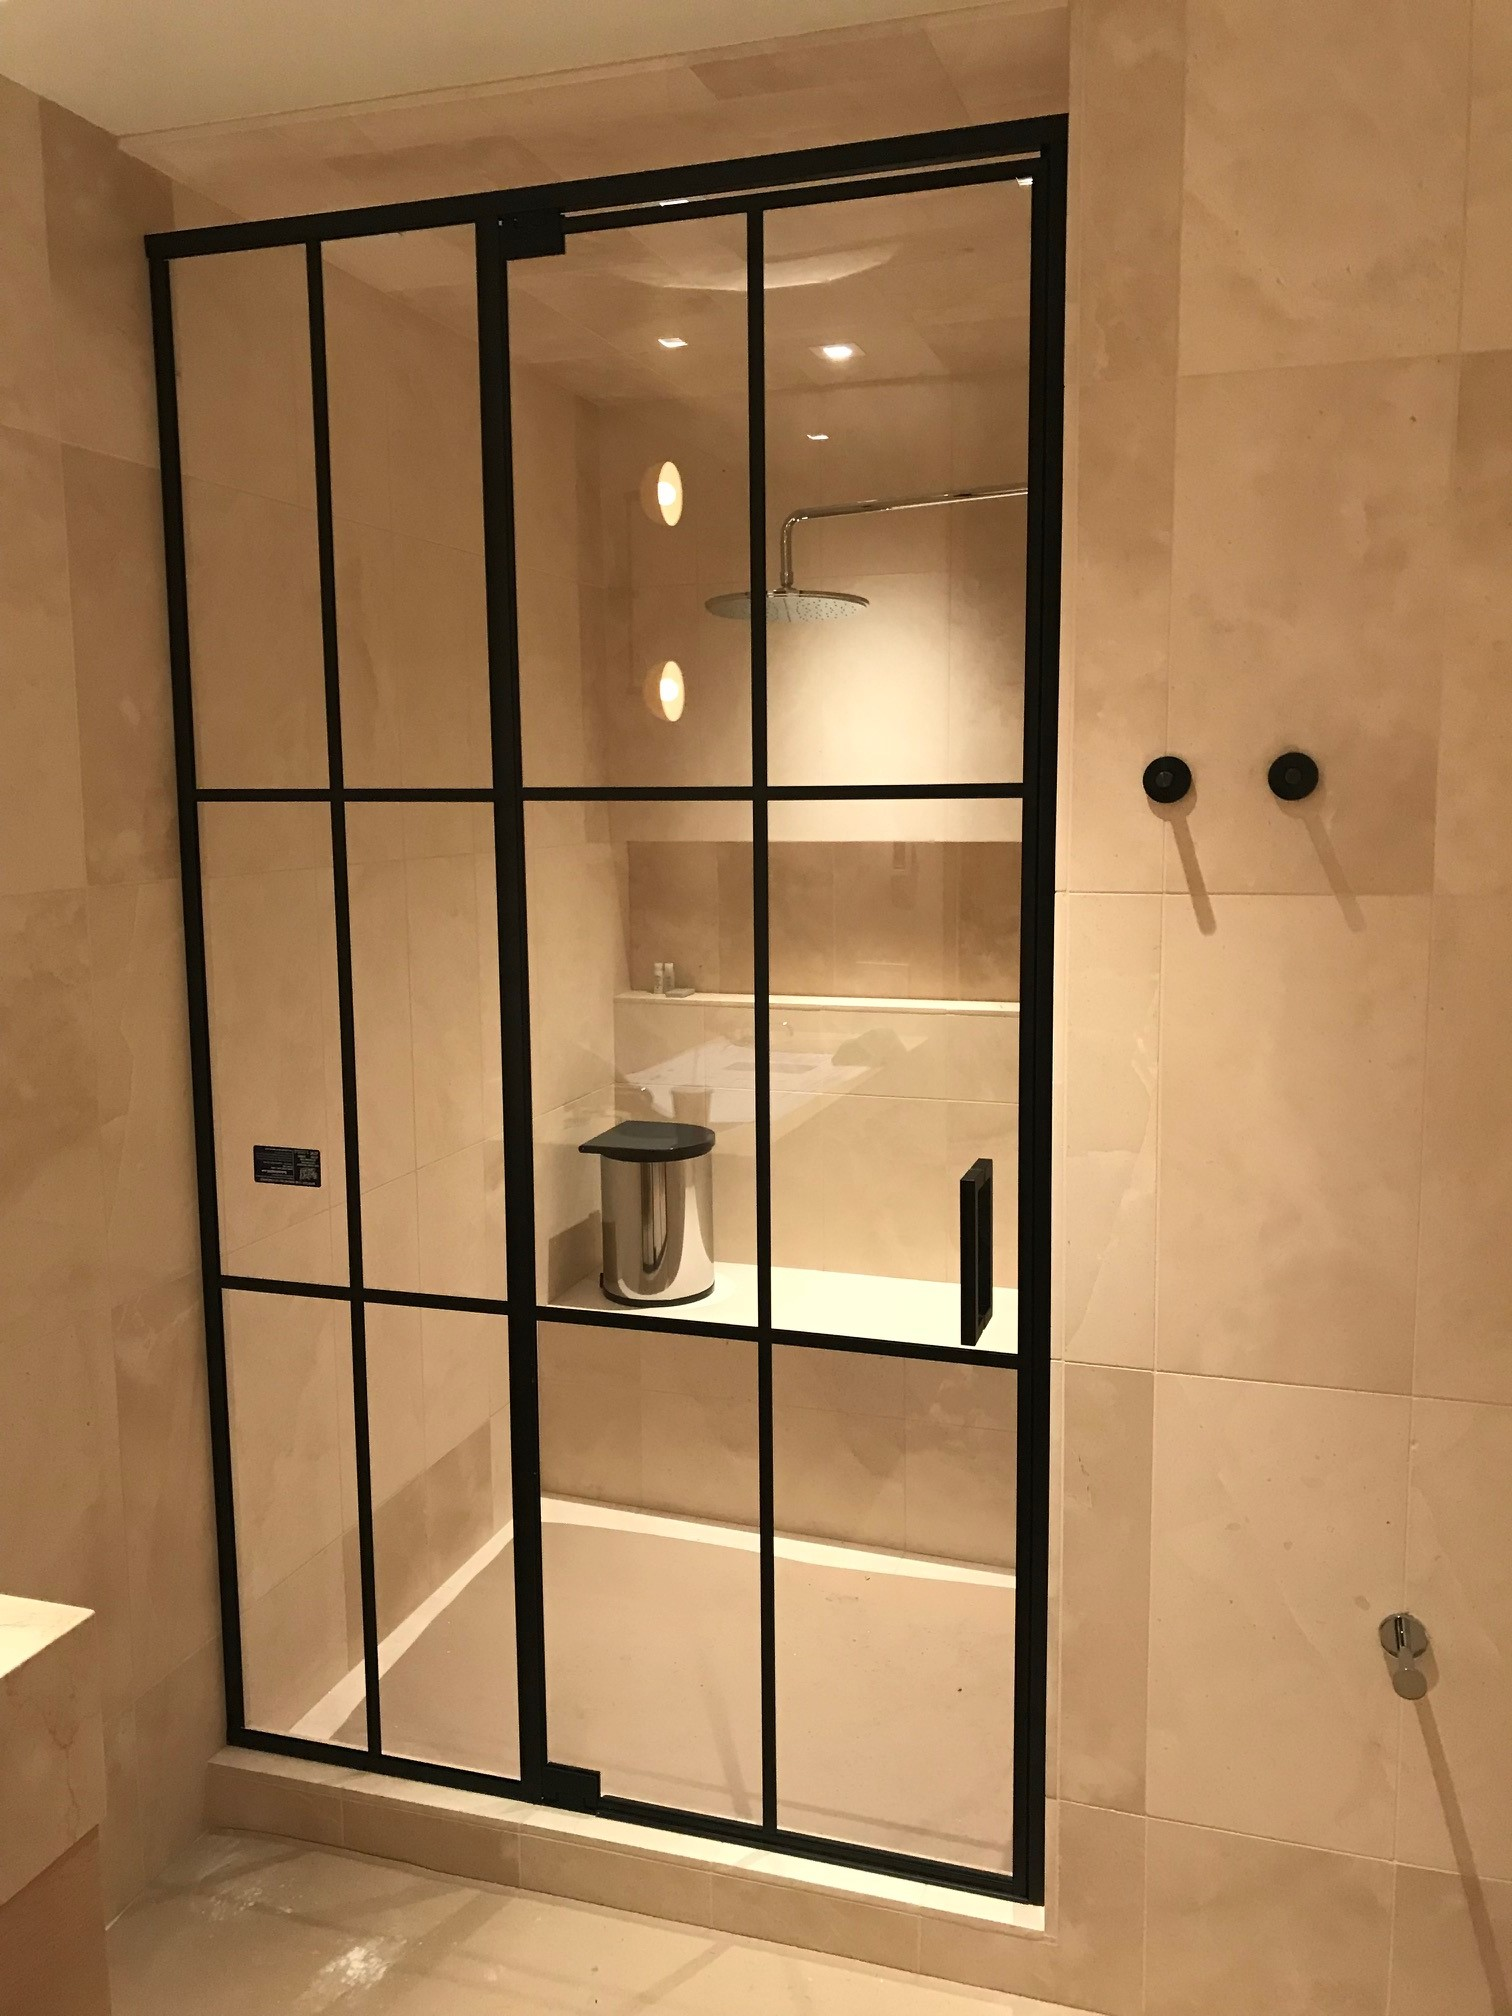 Shower doors 2-JPAG.JPG